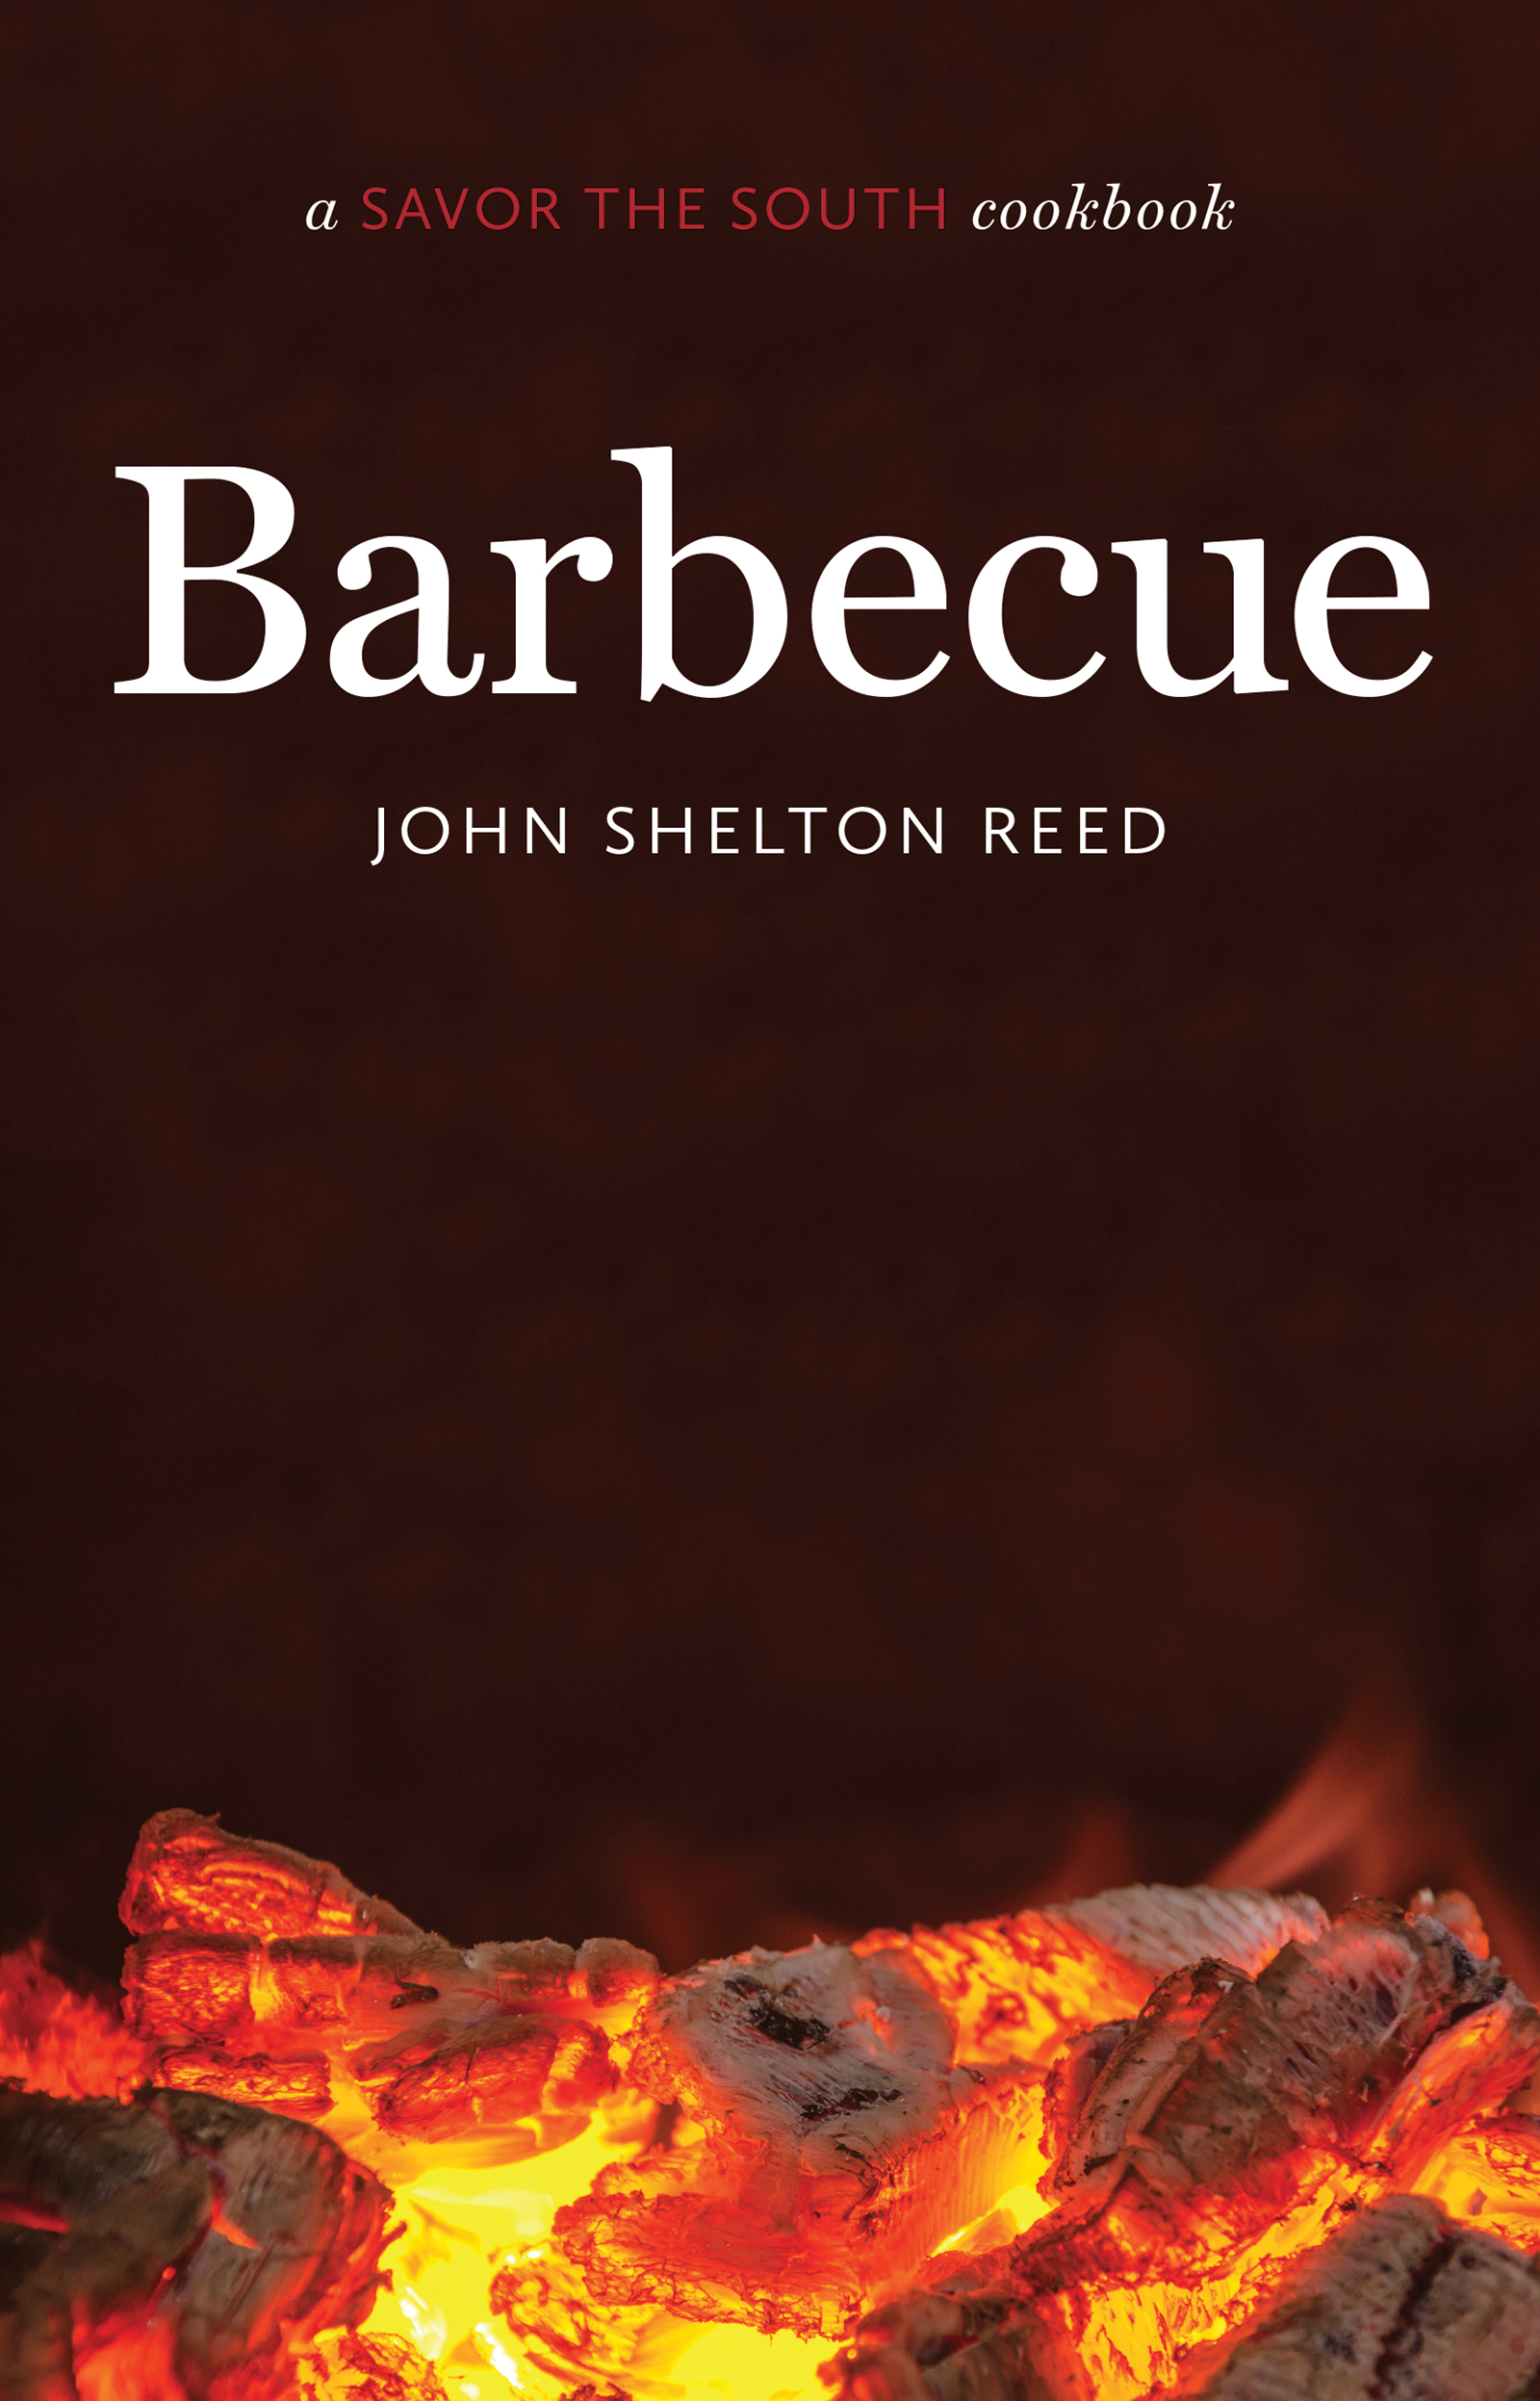 Barbecue a Savor the South® cookbook